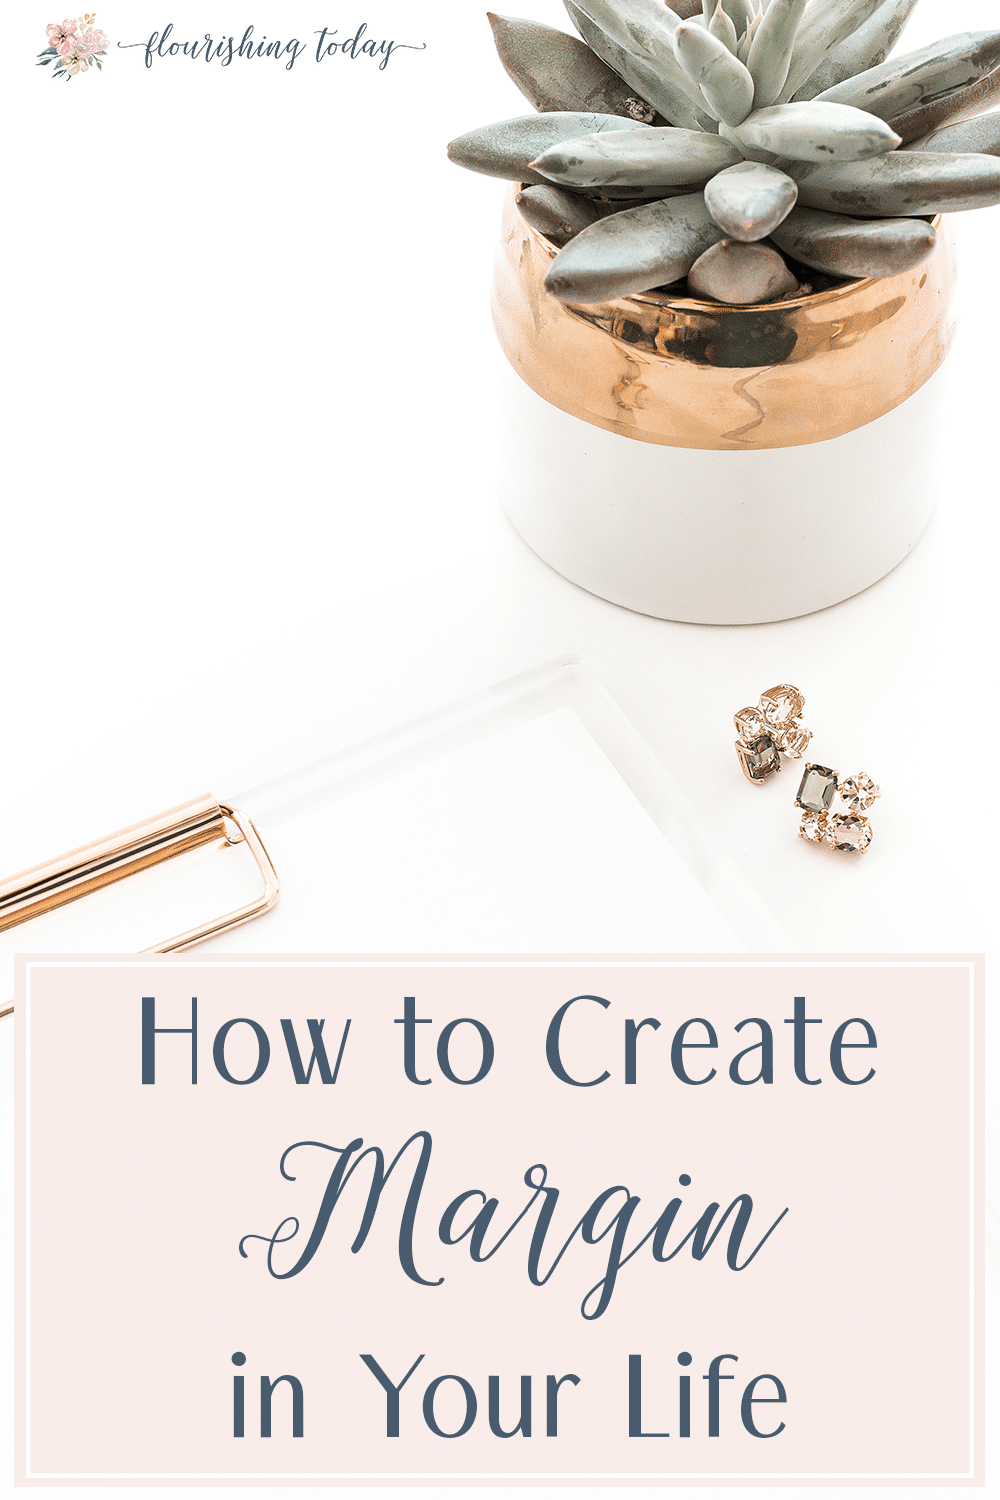 Building margin can help you to avoid burn out and keep your priorities in order. Usually we don't realize we are low on margin until we're exhausted. Here's a few tips on how to create margin in your life.